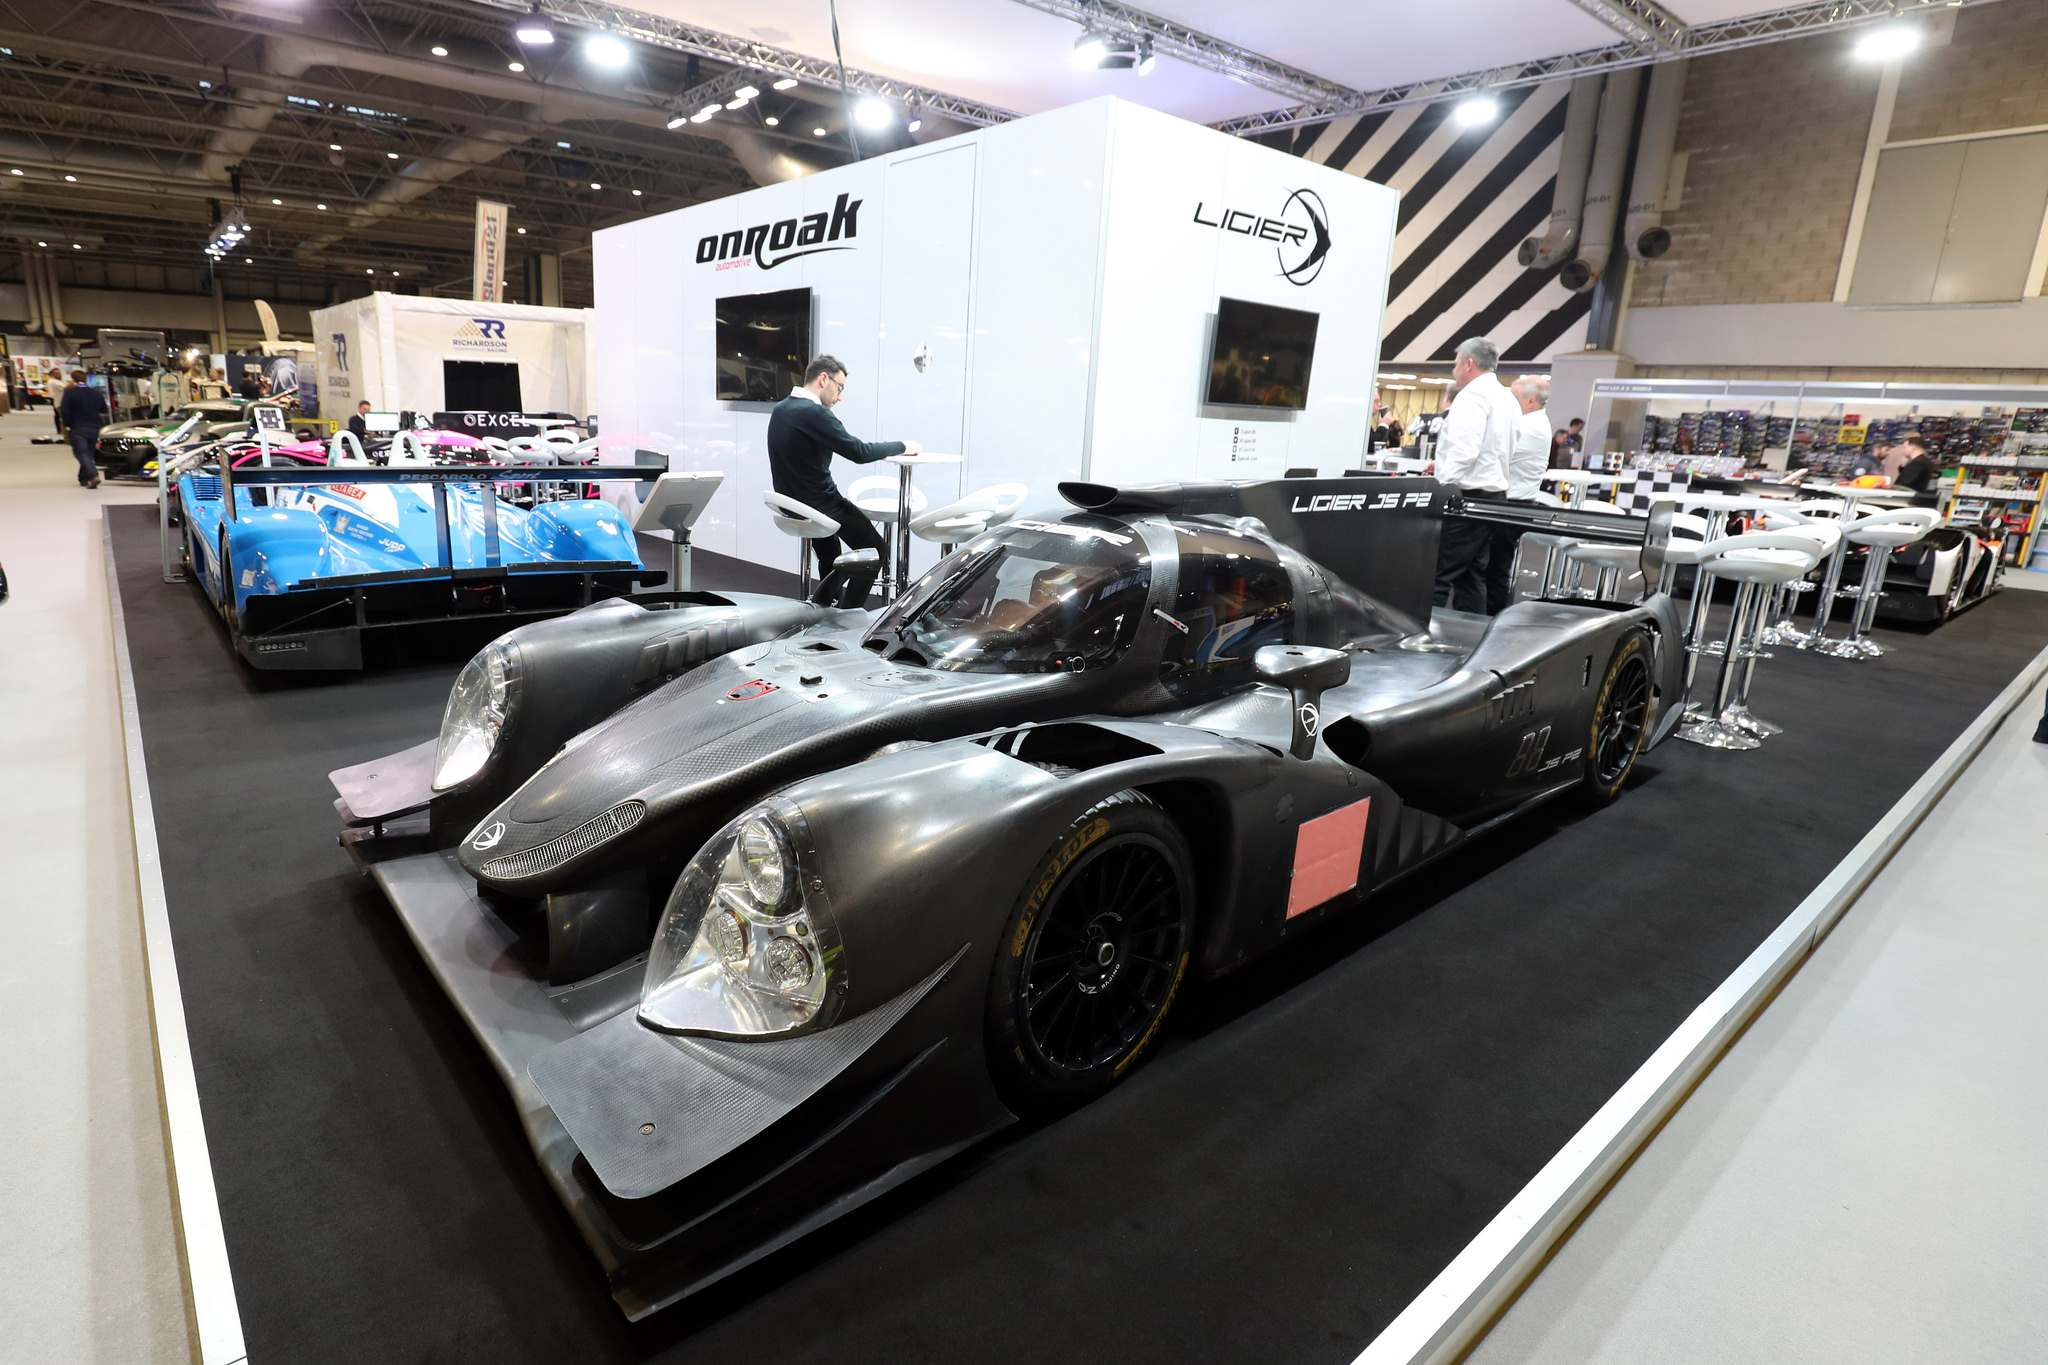 ligier 201814 Ligier at Autosport International Show 2018